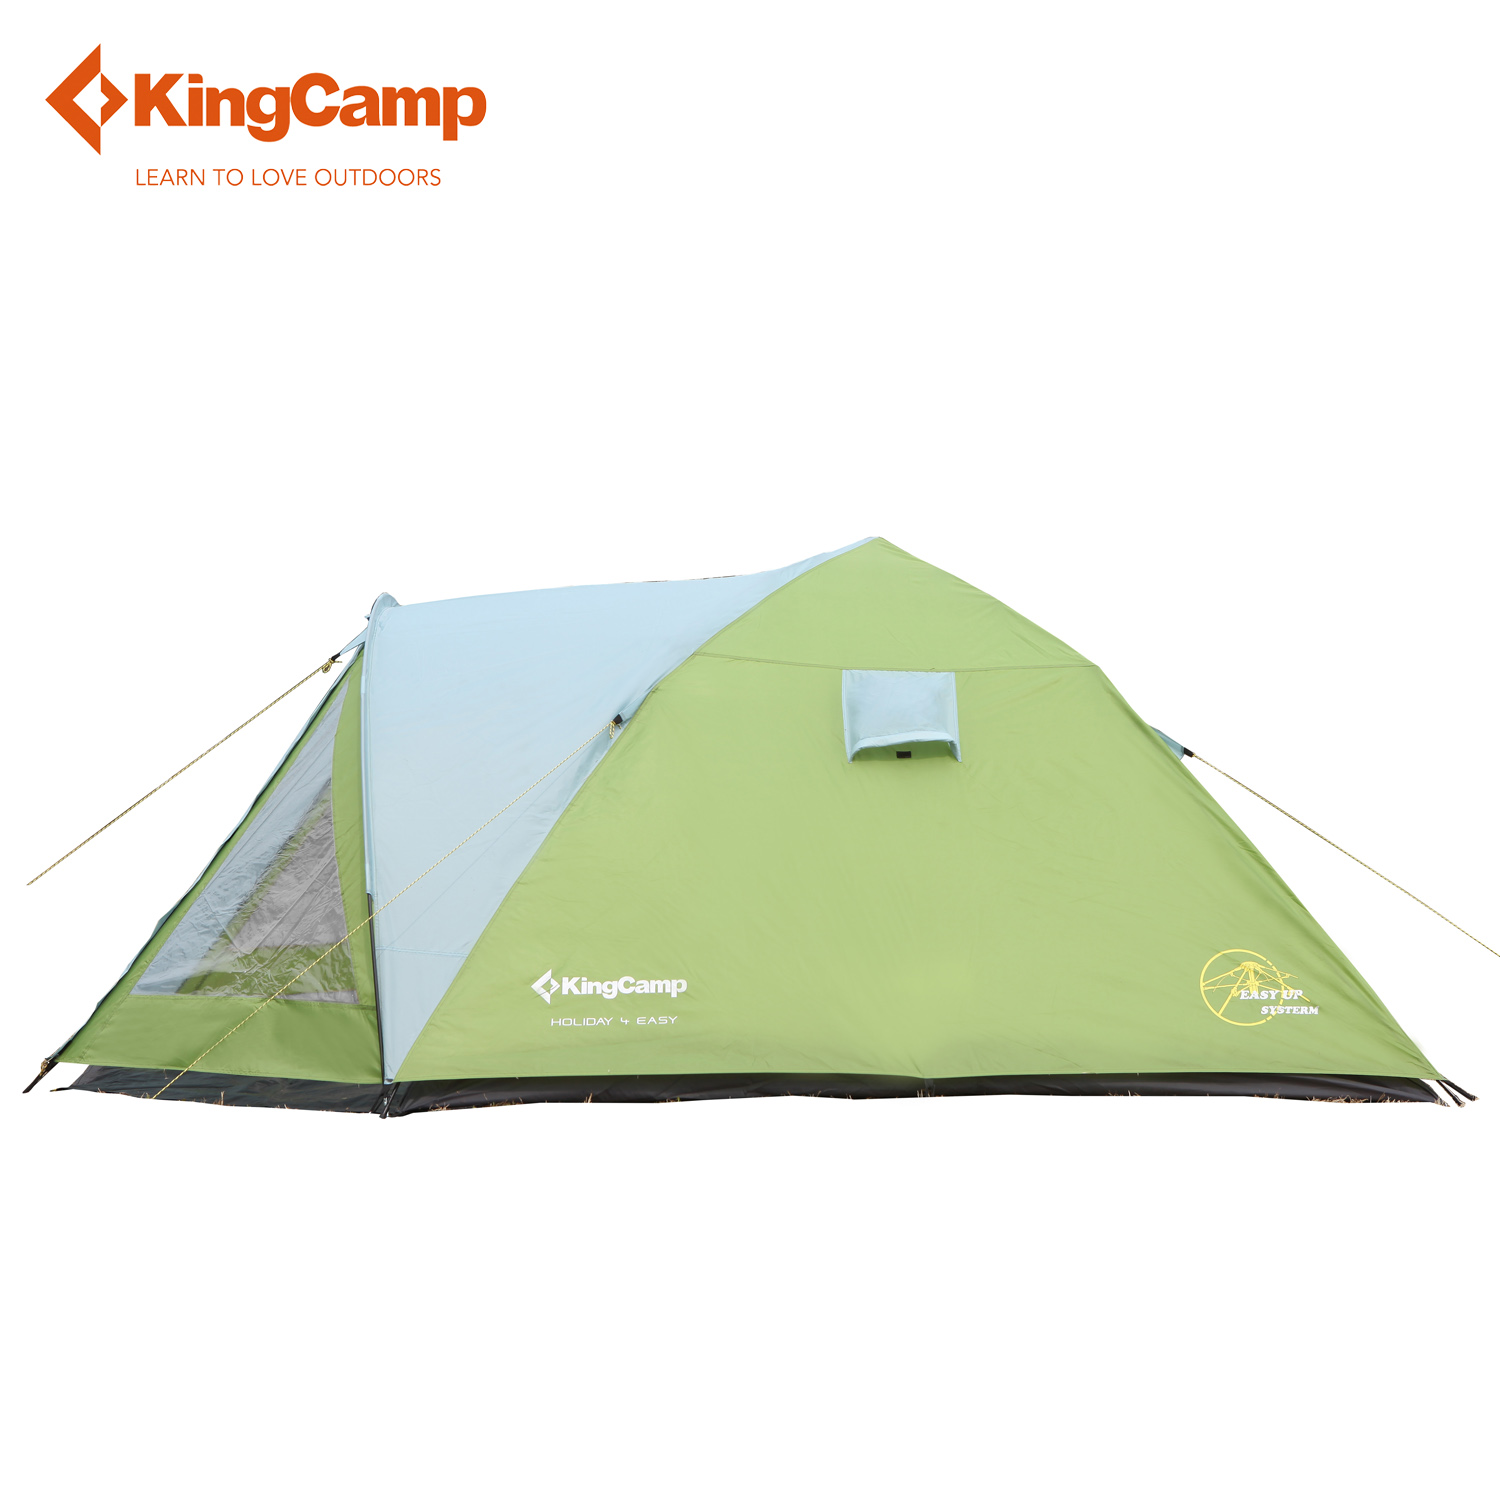 KingCamp Holiday Easy-Up 4-Person 3-Season Outdoor Tent for Family Camping